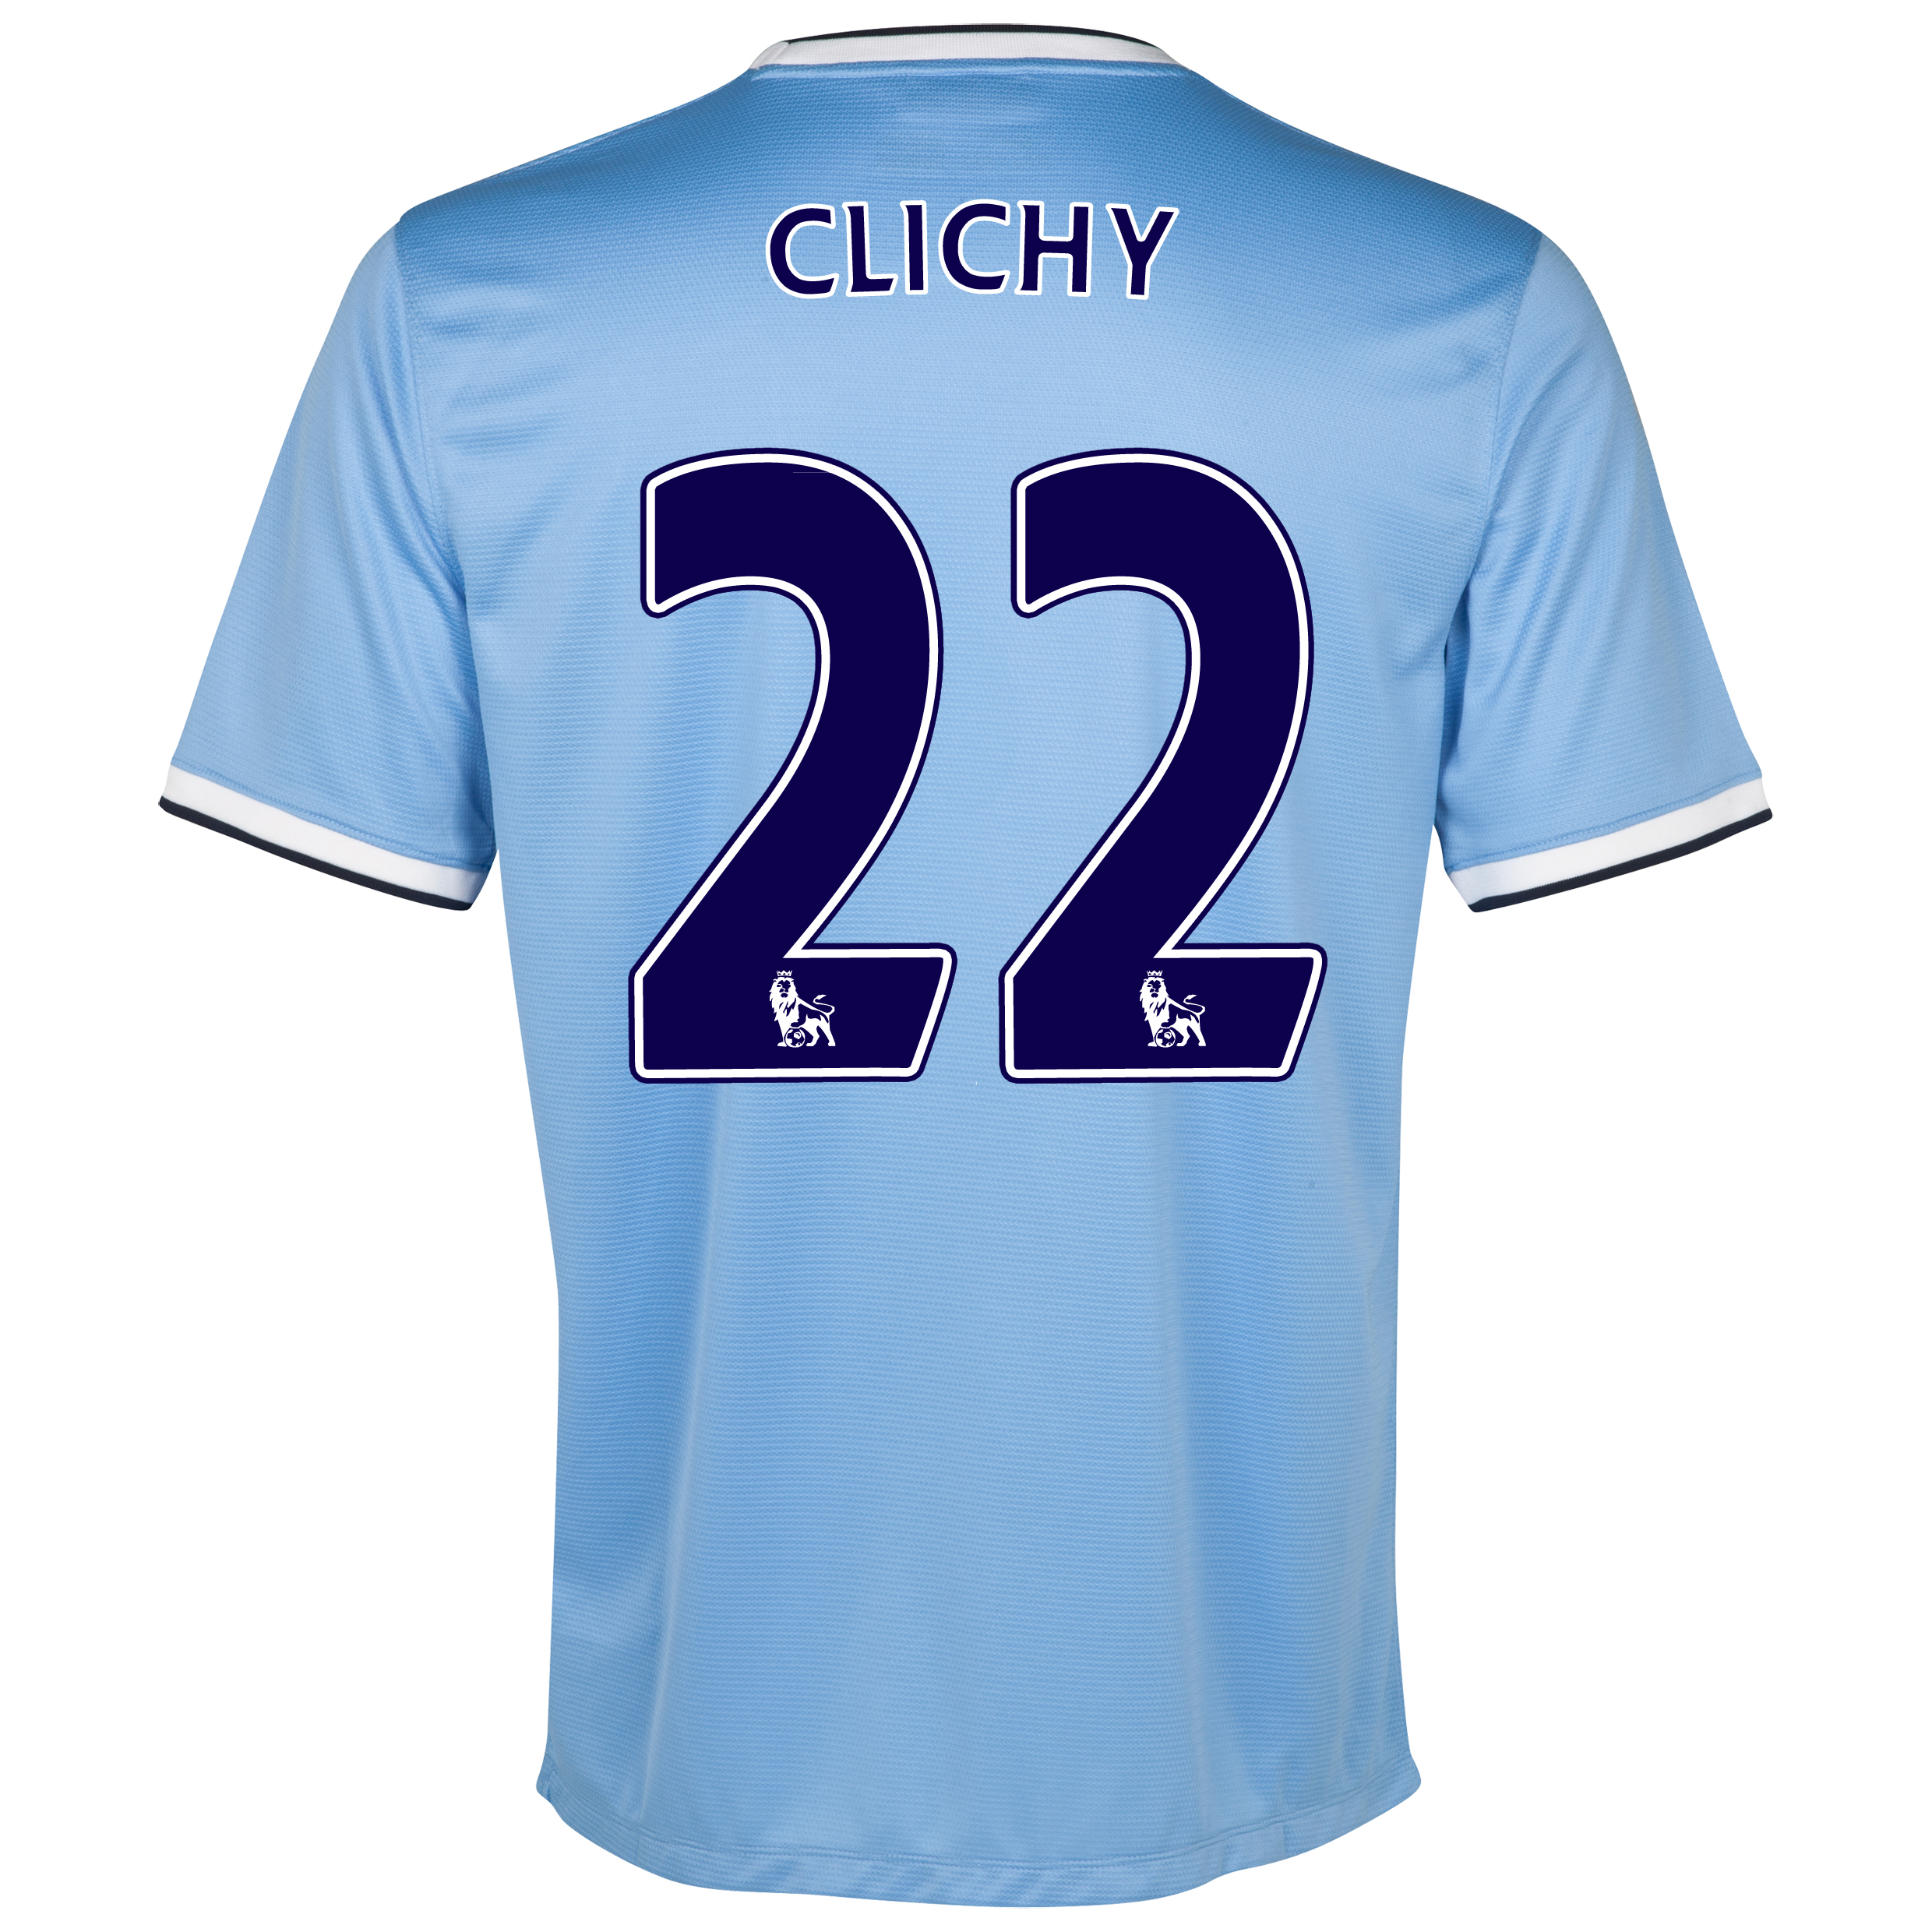 Manchester City Home Shirt 2013/14 - Junior with Clichy 22 printing